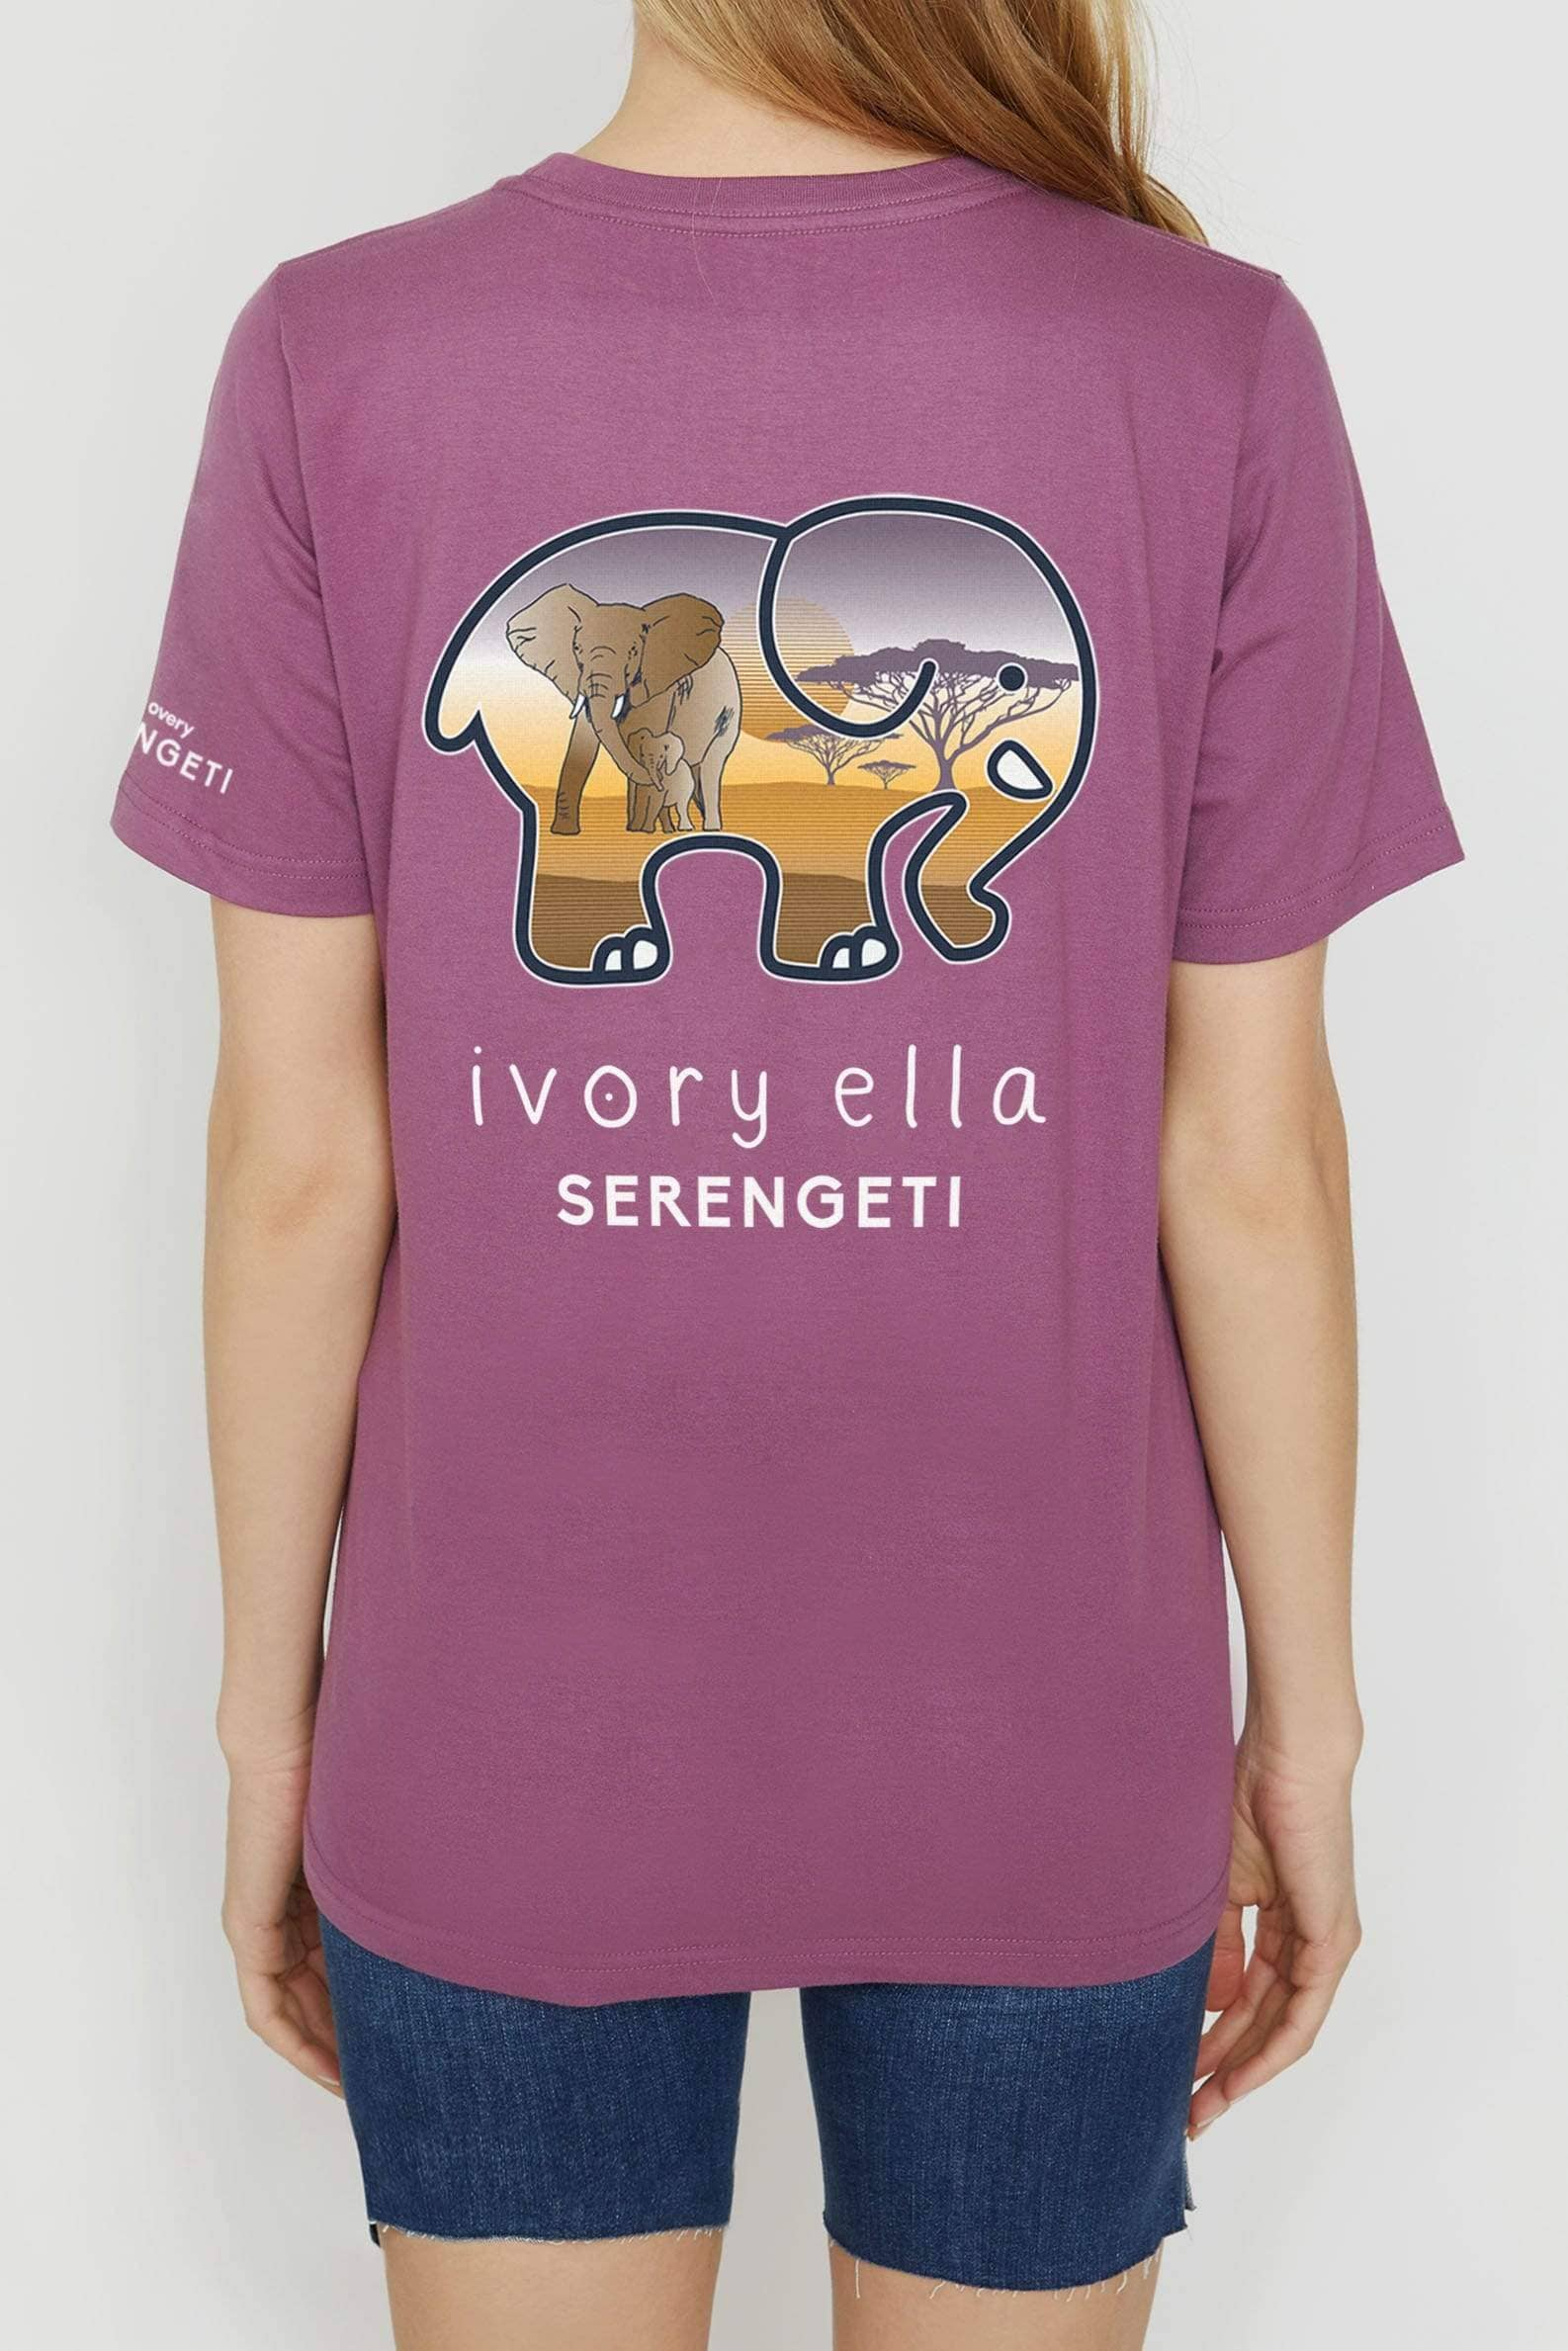 Berry Serengeti Elephant Ella Tee - Ivory Ella - Women's Short Sleeve Tees